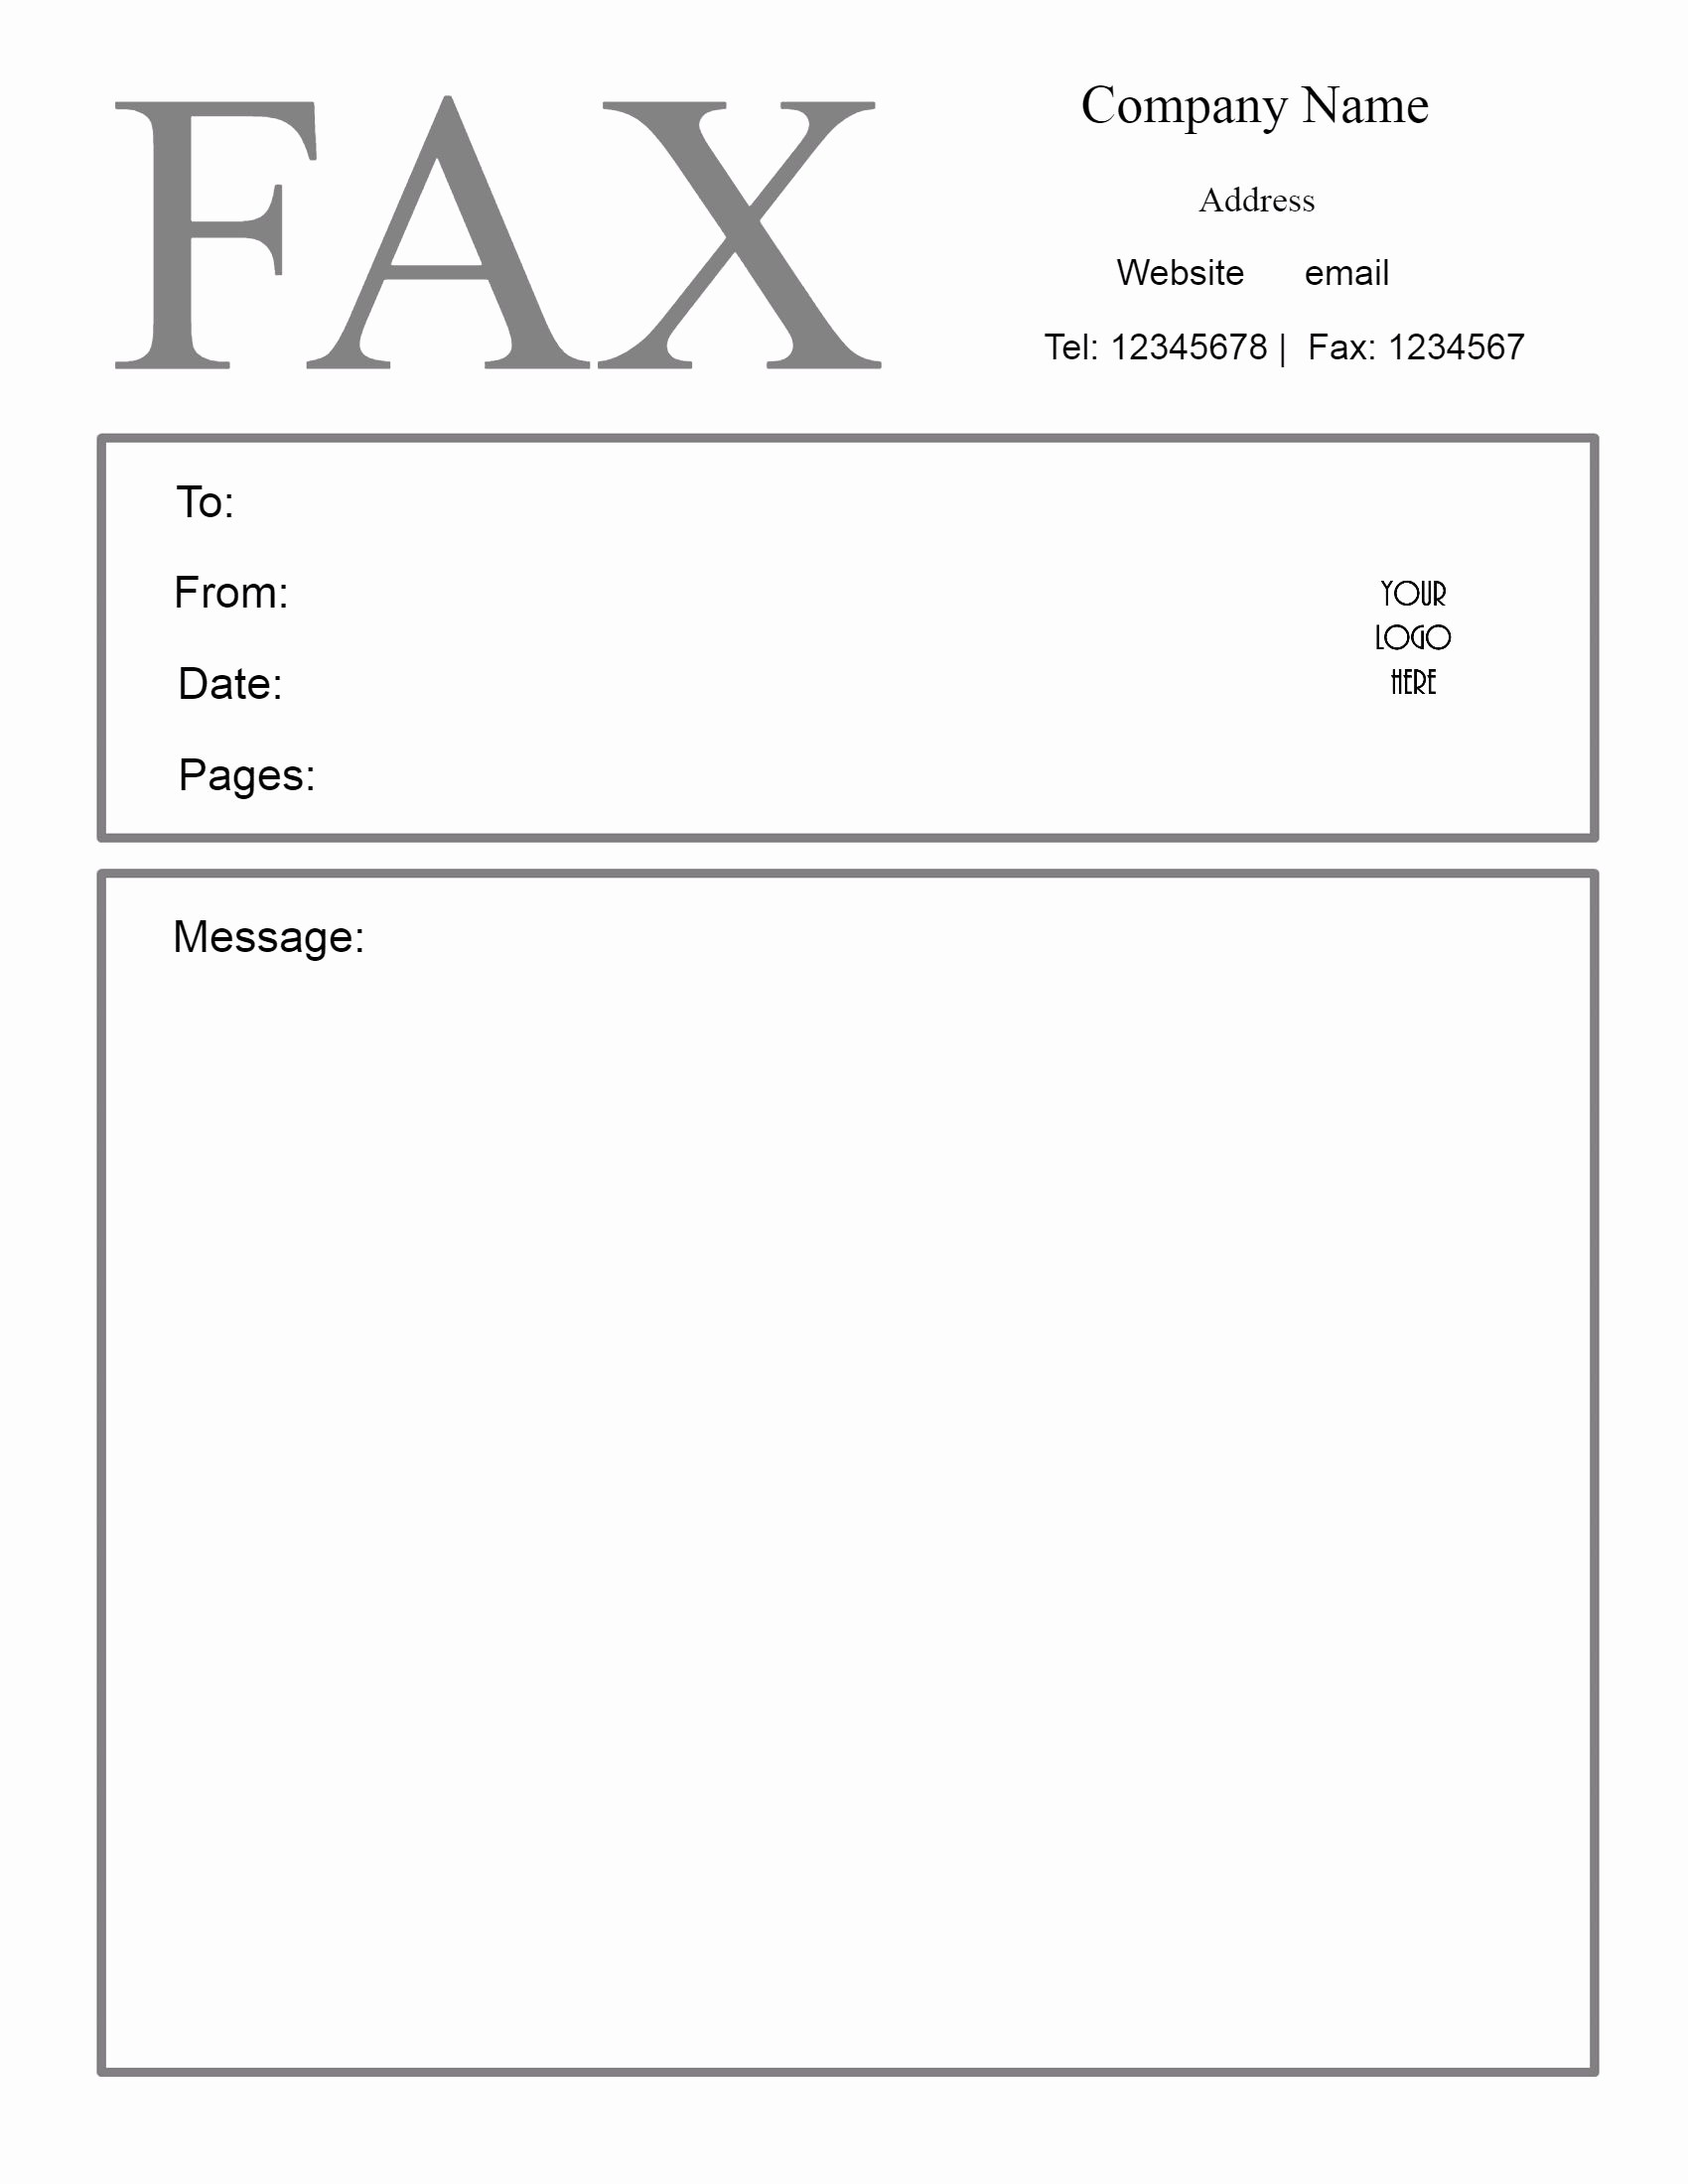 Printable Free Fax Cover Sheet Unique Free Fax Cover Sheet Template